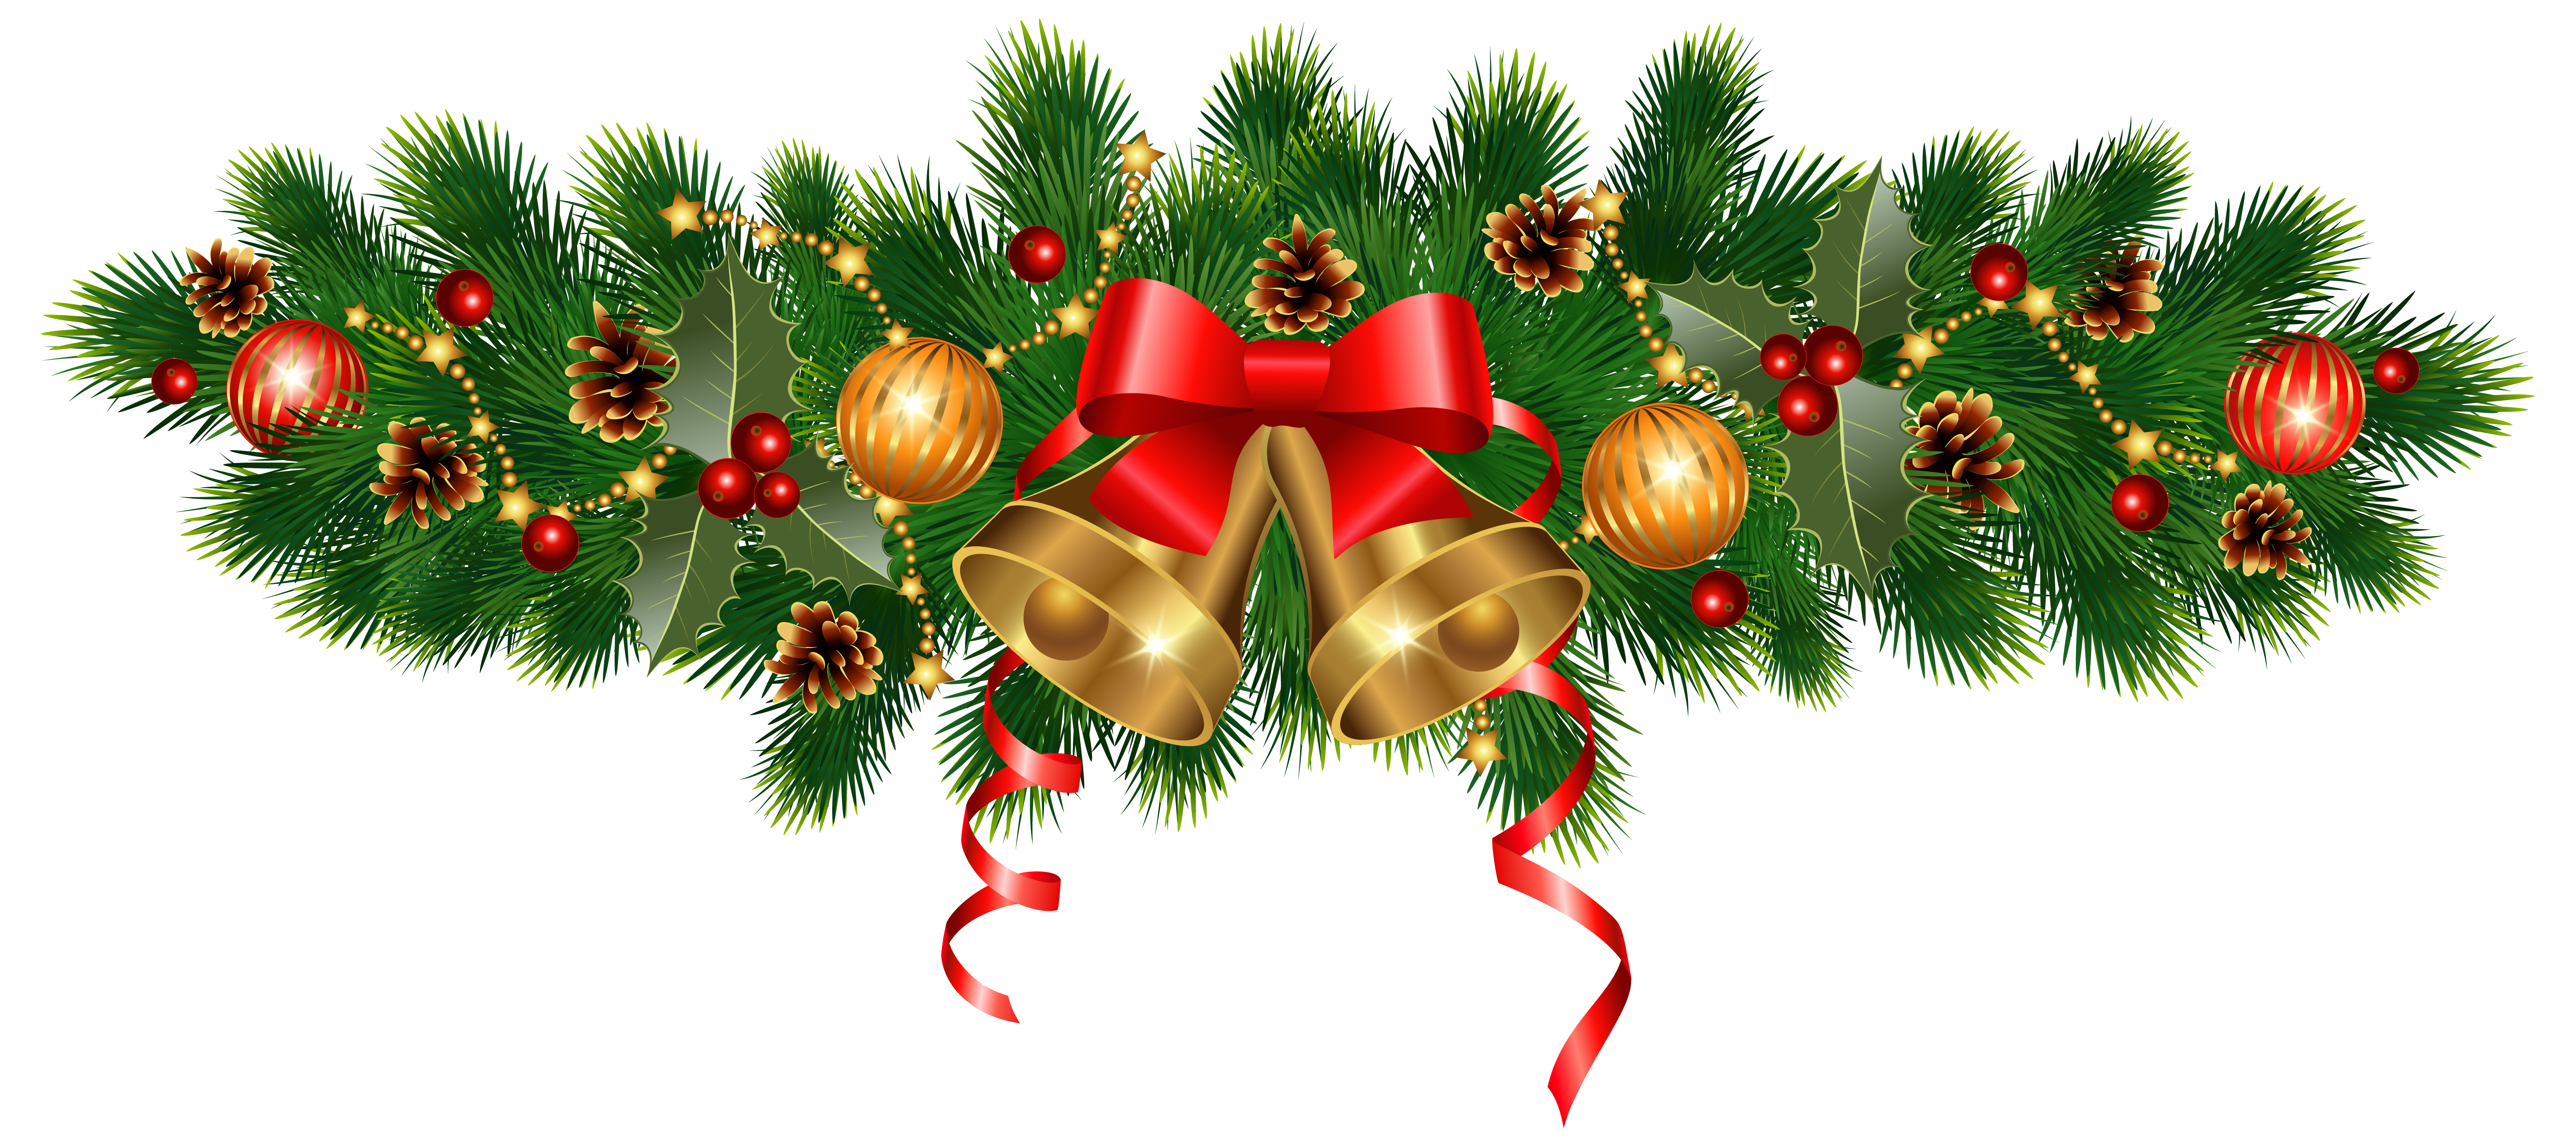 Christmas Golden Bells and Ornaments Decoration PNG Clipart Image.